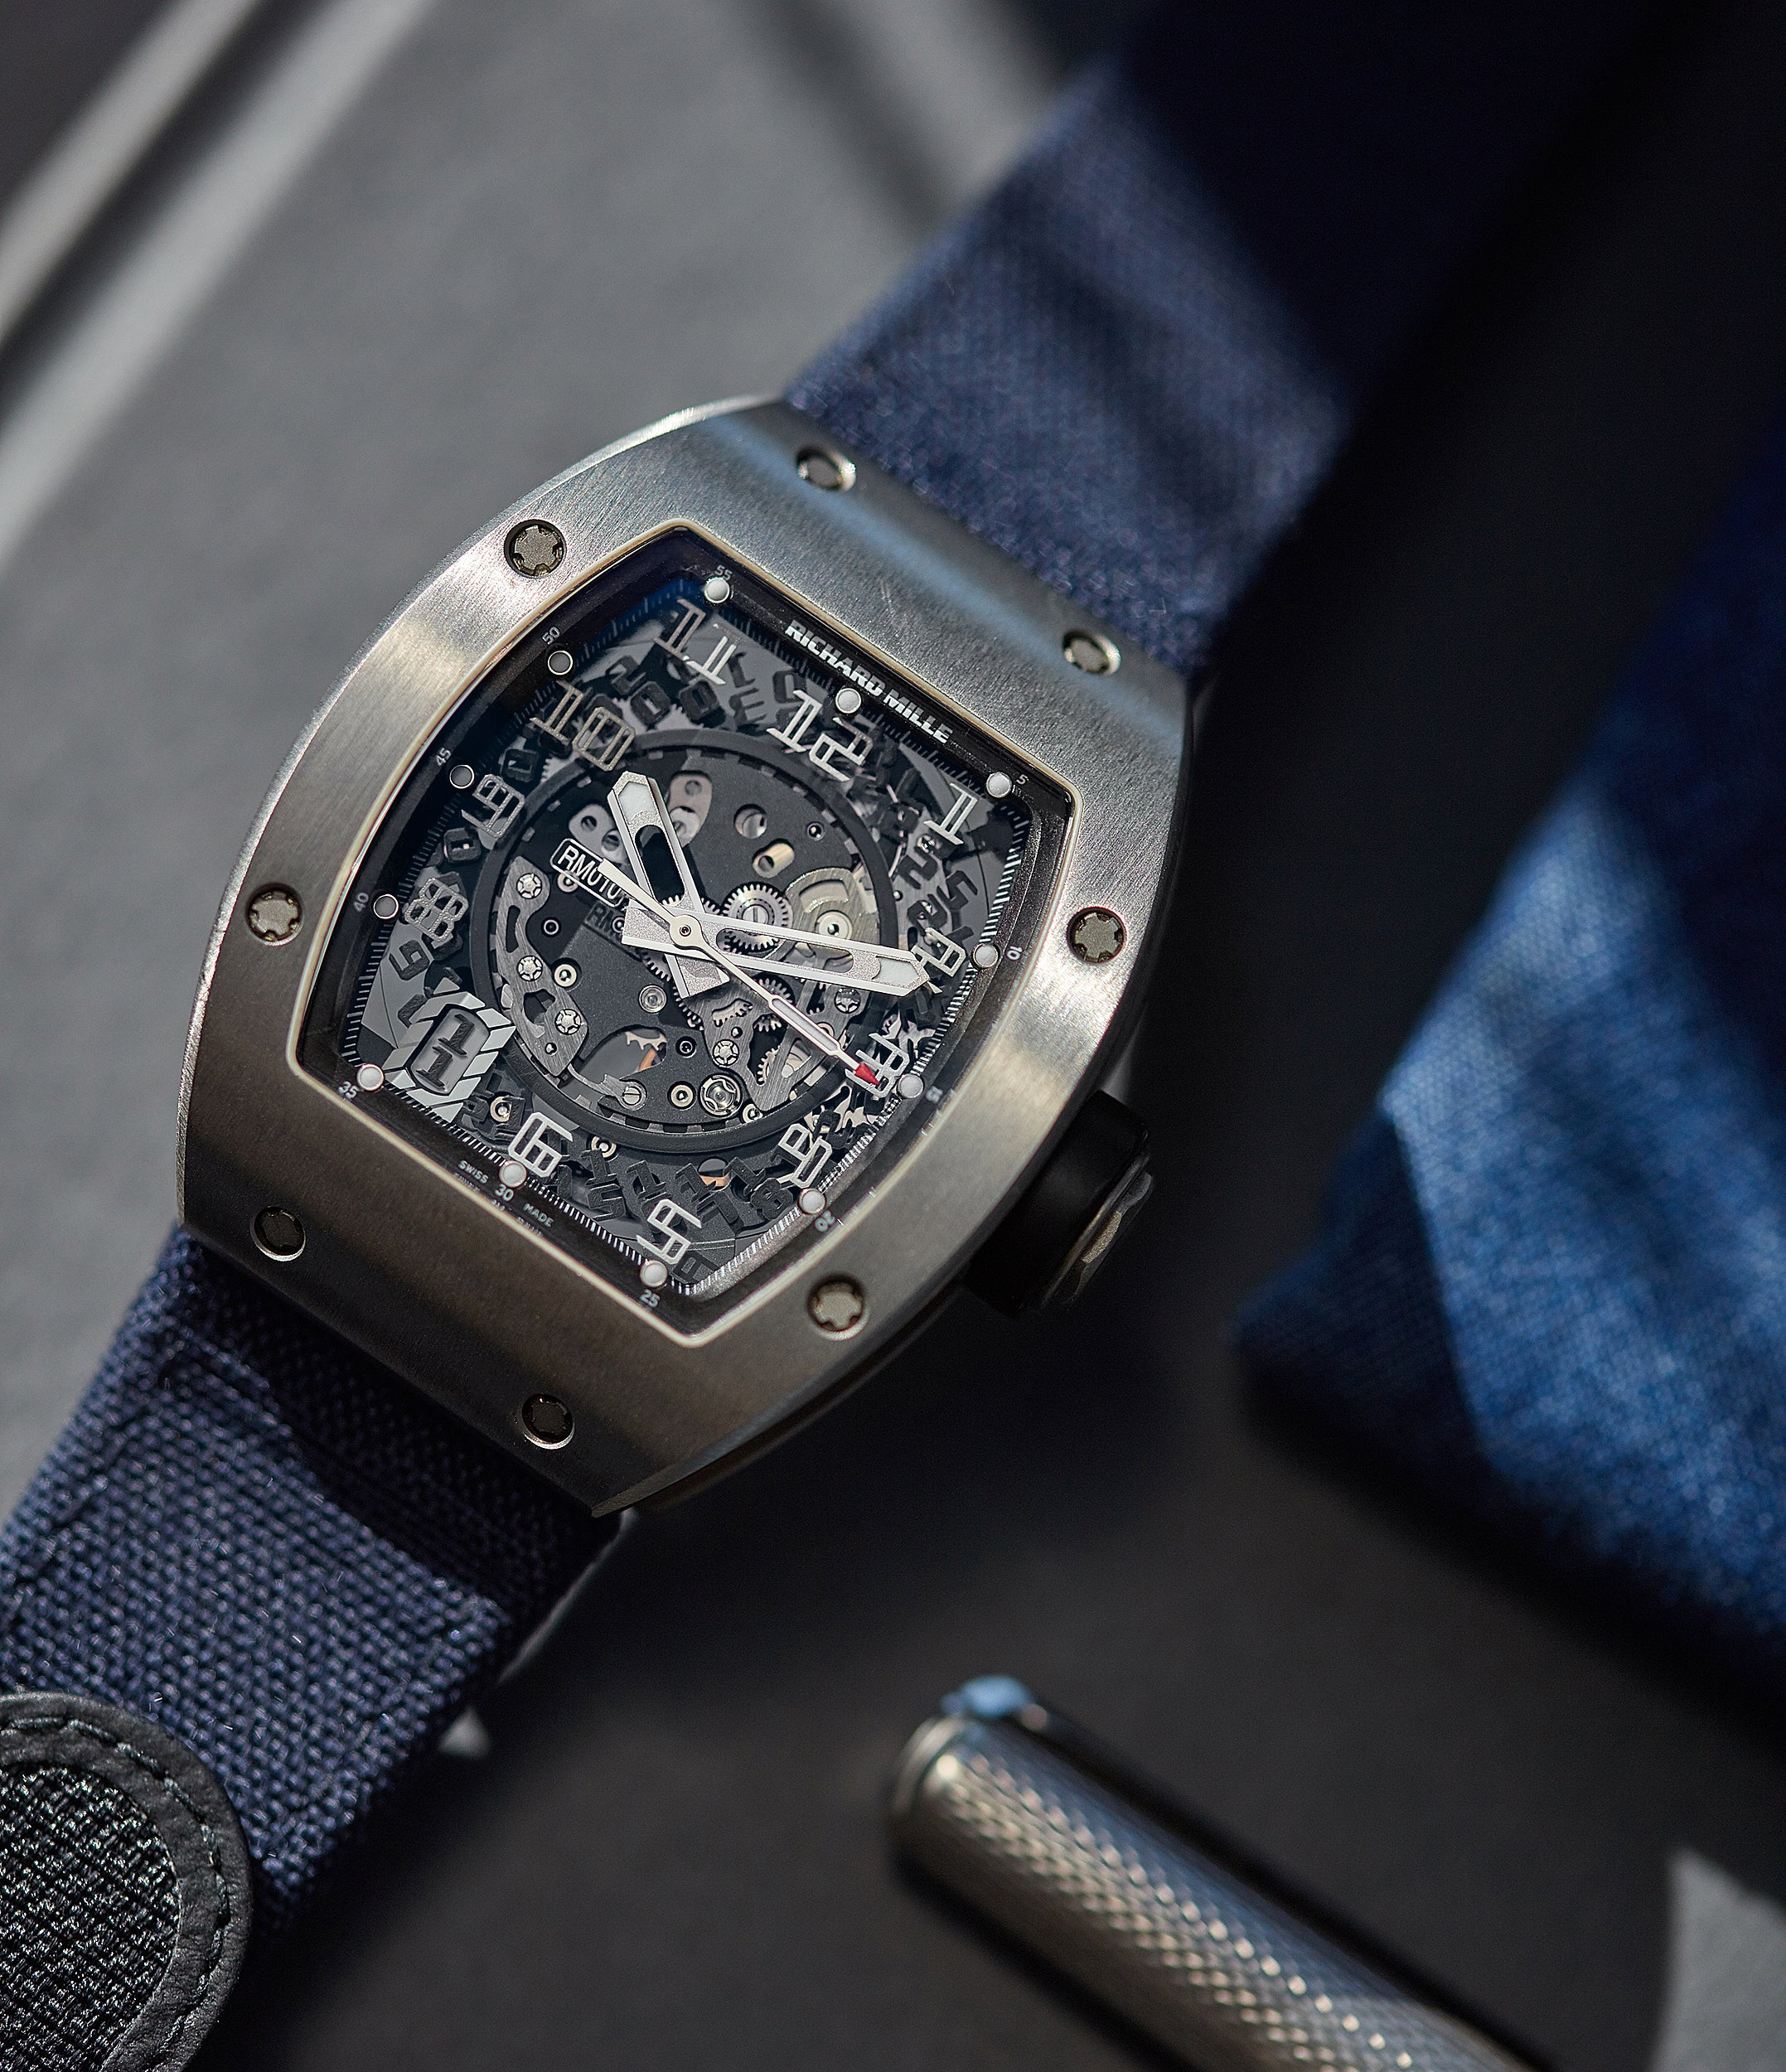 rare Richard Mille RM010 titanium rare luxury sport watch by independent watchmaker for sale online at A Collected Man London UK specialist of rare watches